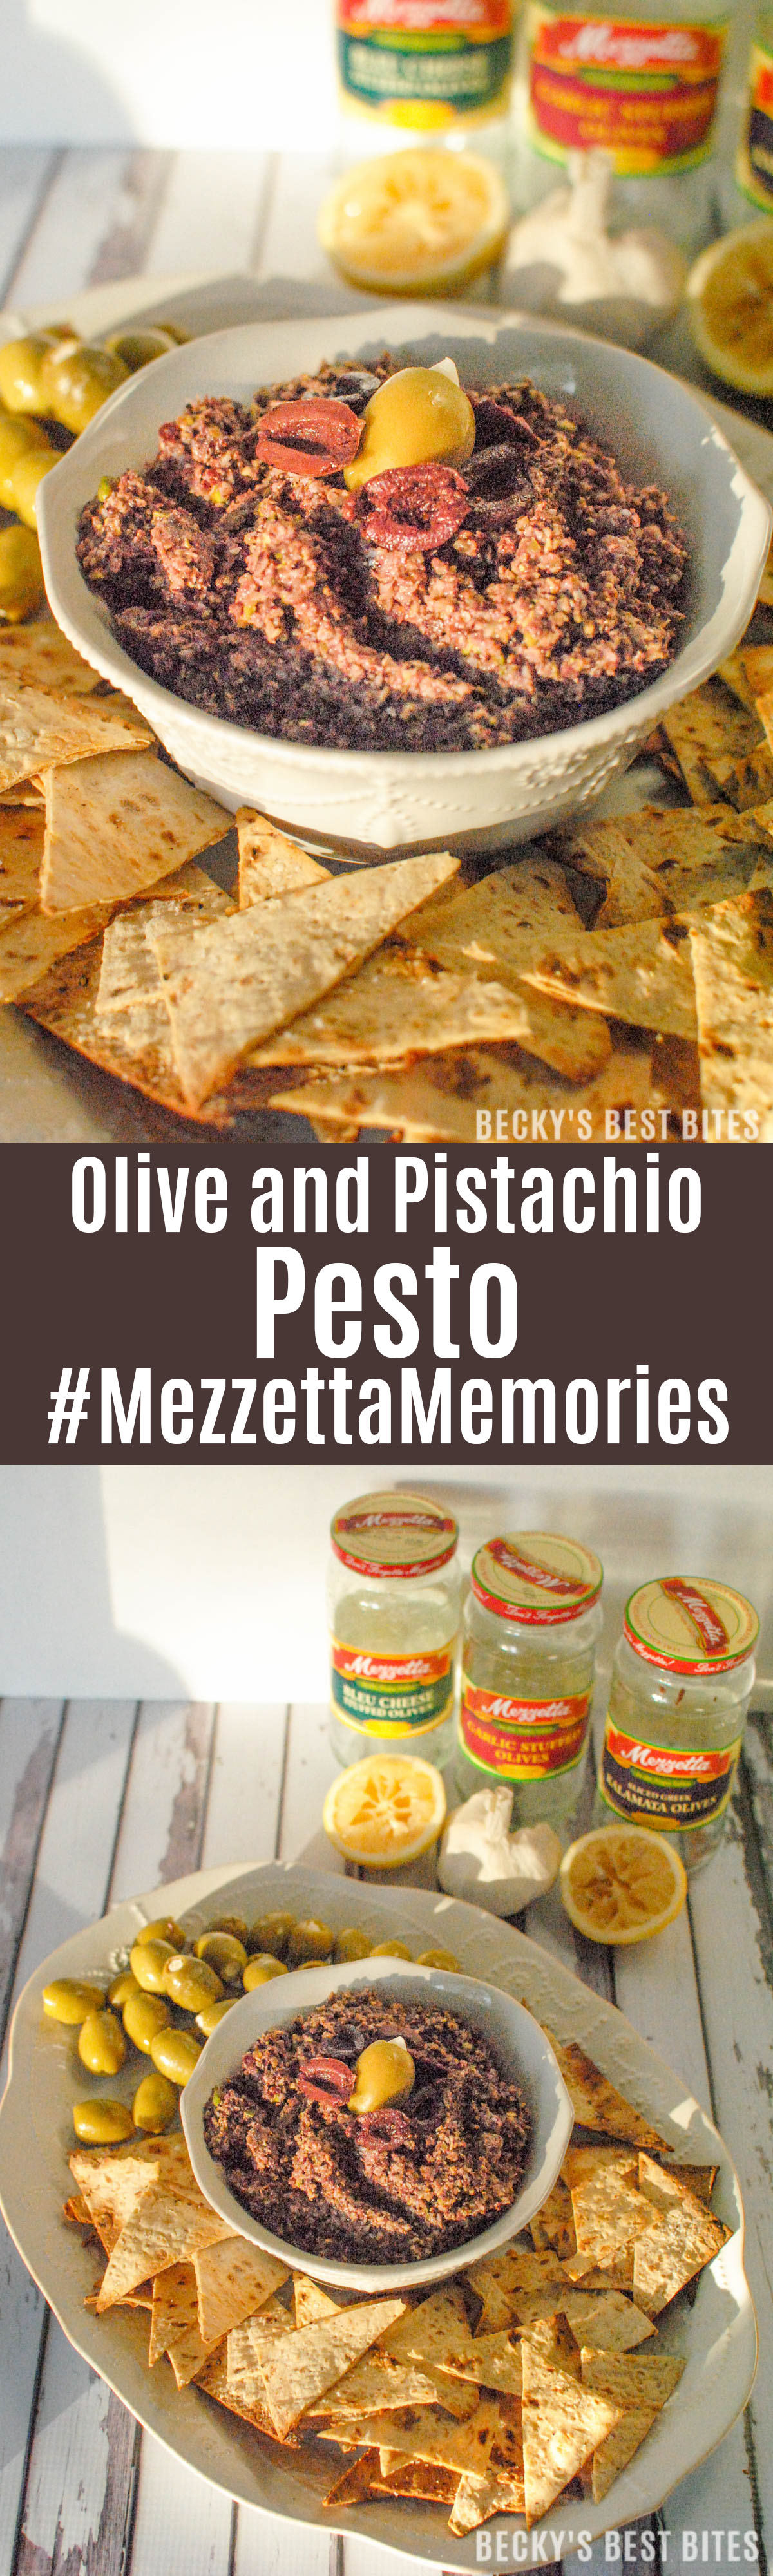 Mezzetta Olive and Pistachio Pesto is a holiday recipe that the whole family can enjoy! Win a holiday memories sharing pack. Easy Giveaway #MezzettaMemories #ad |beckysbestbites.com